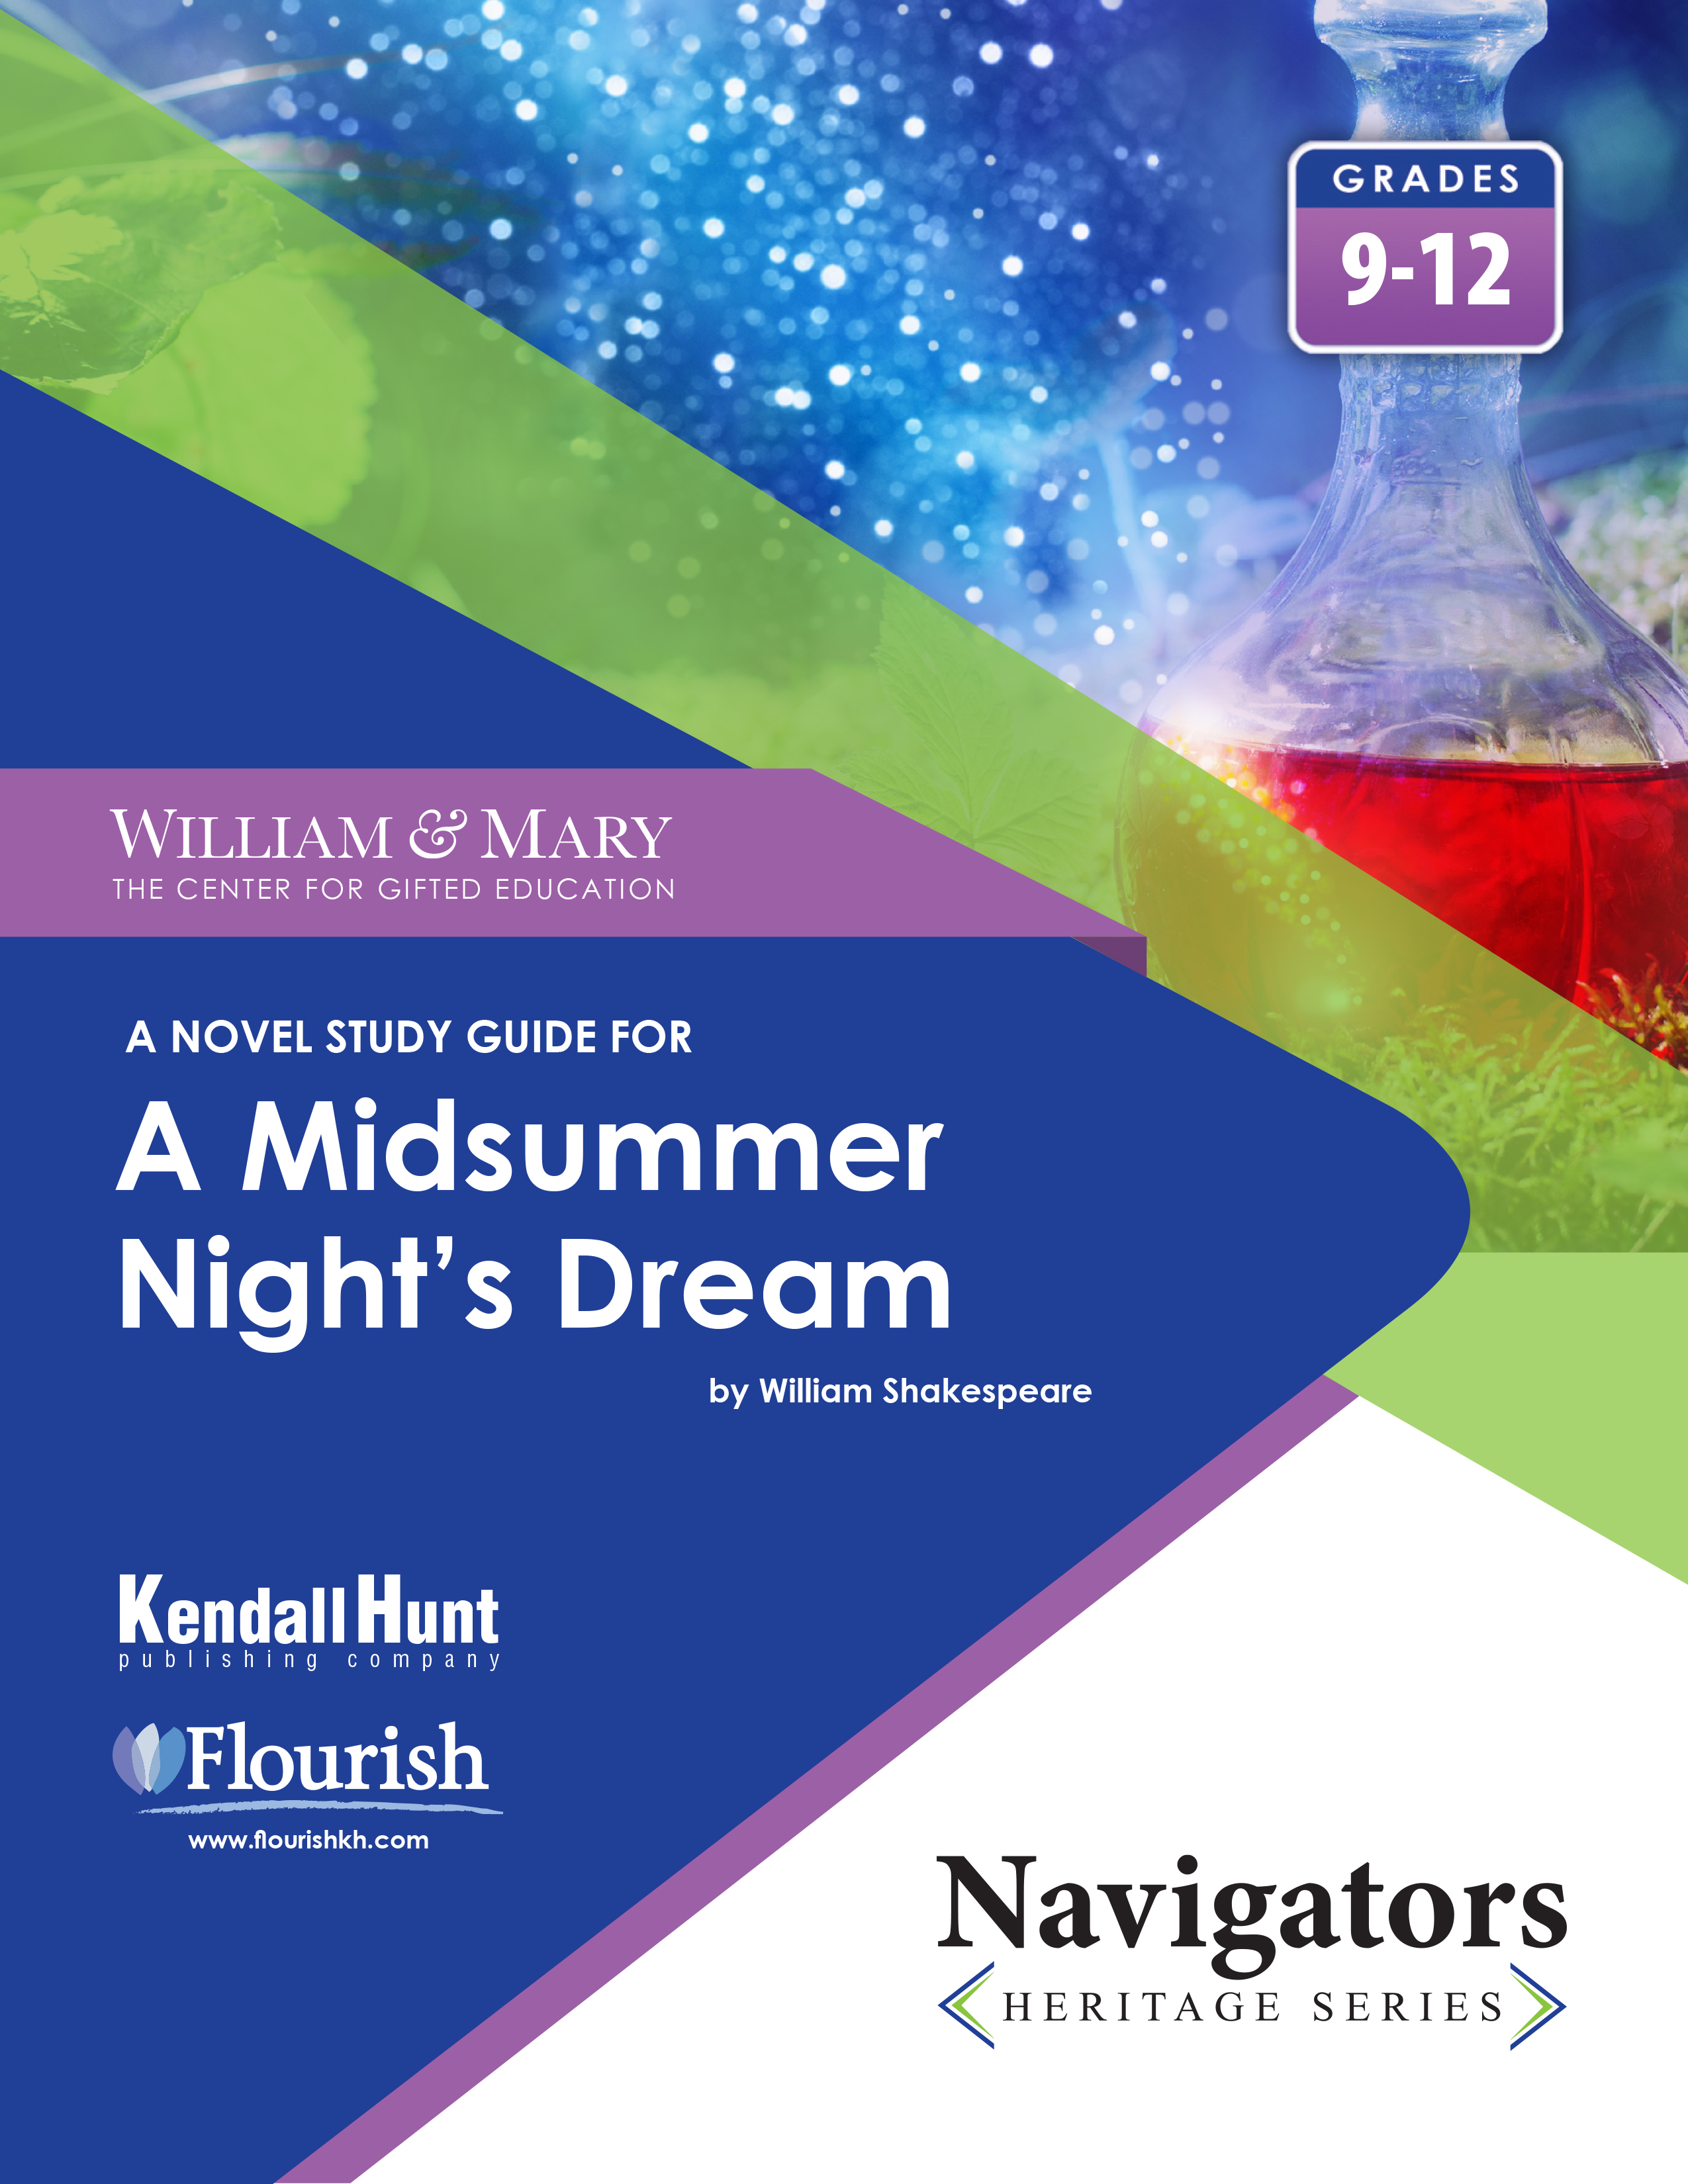 William & Mary Navigator A Midsummer Night's Dream